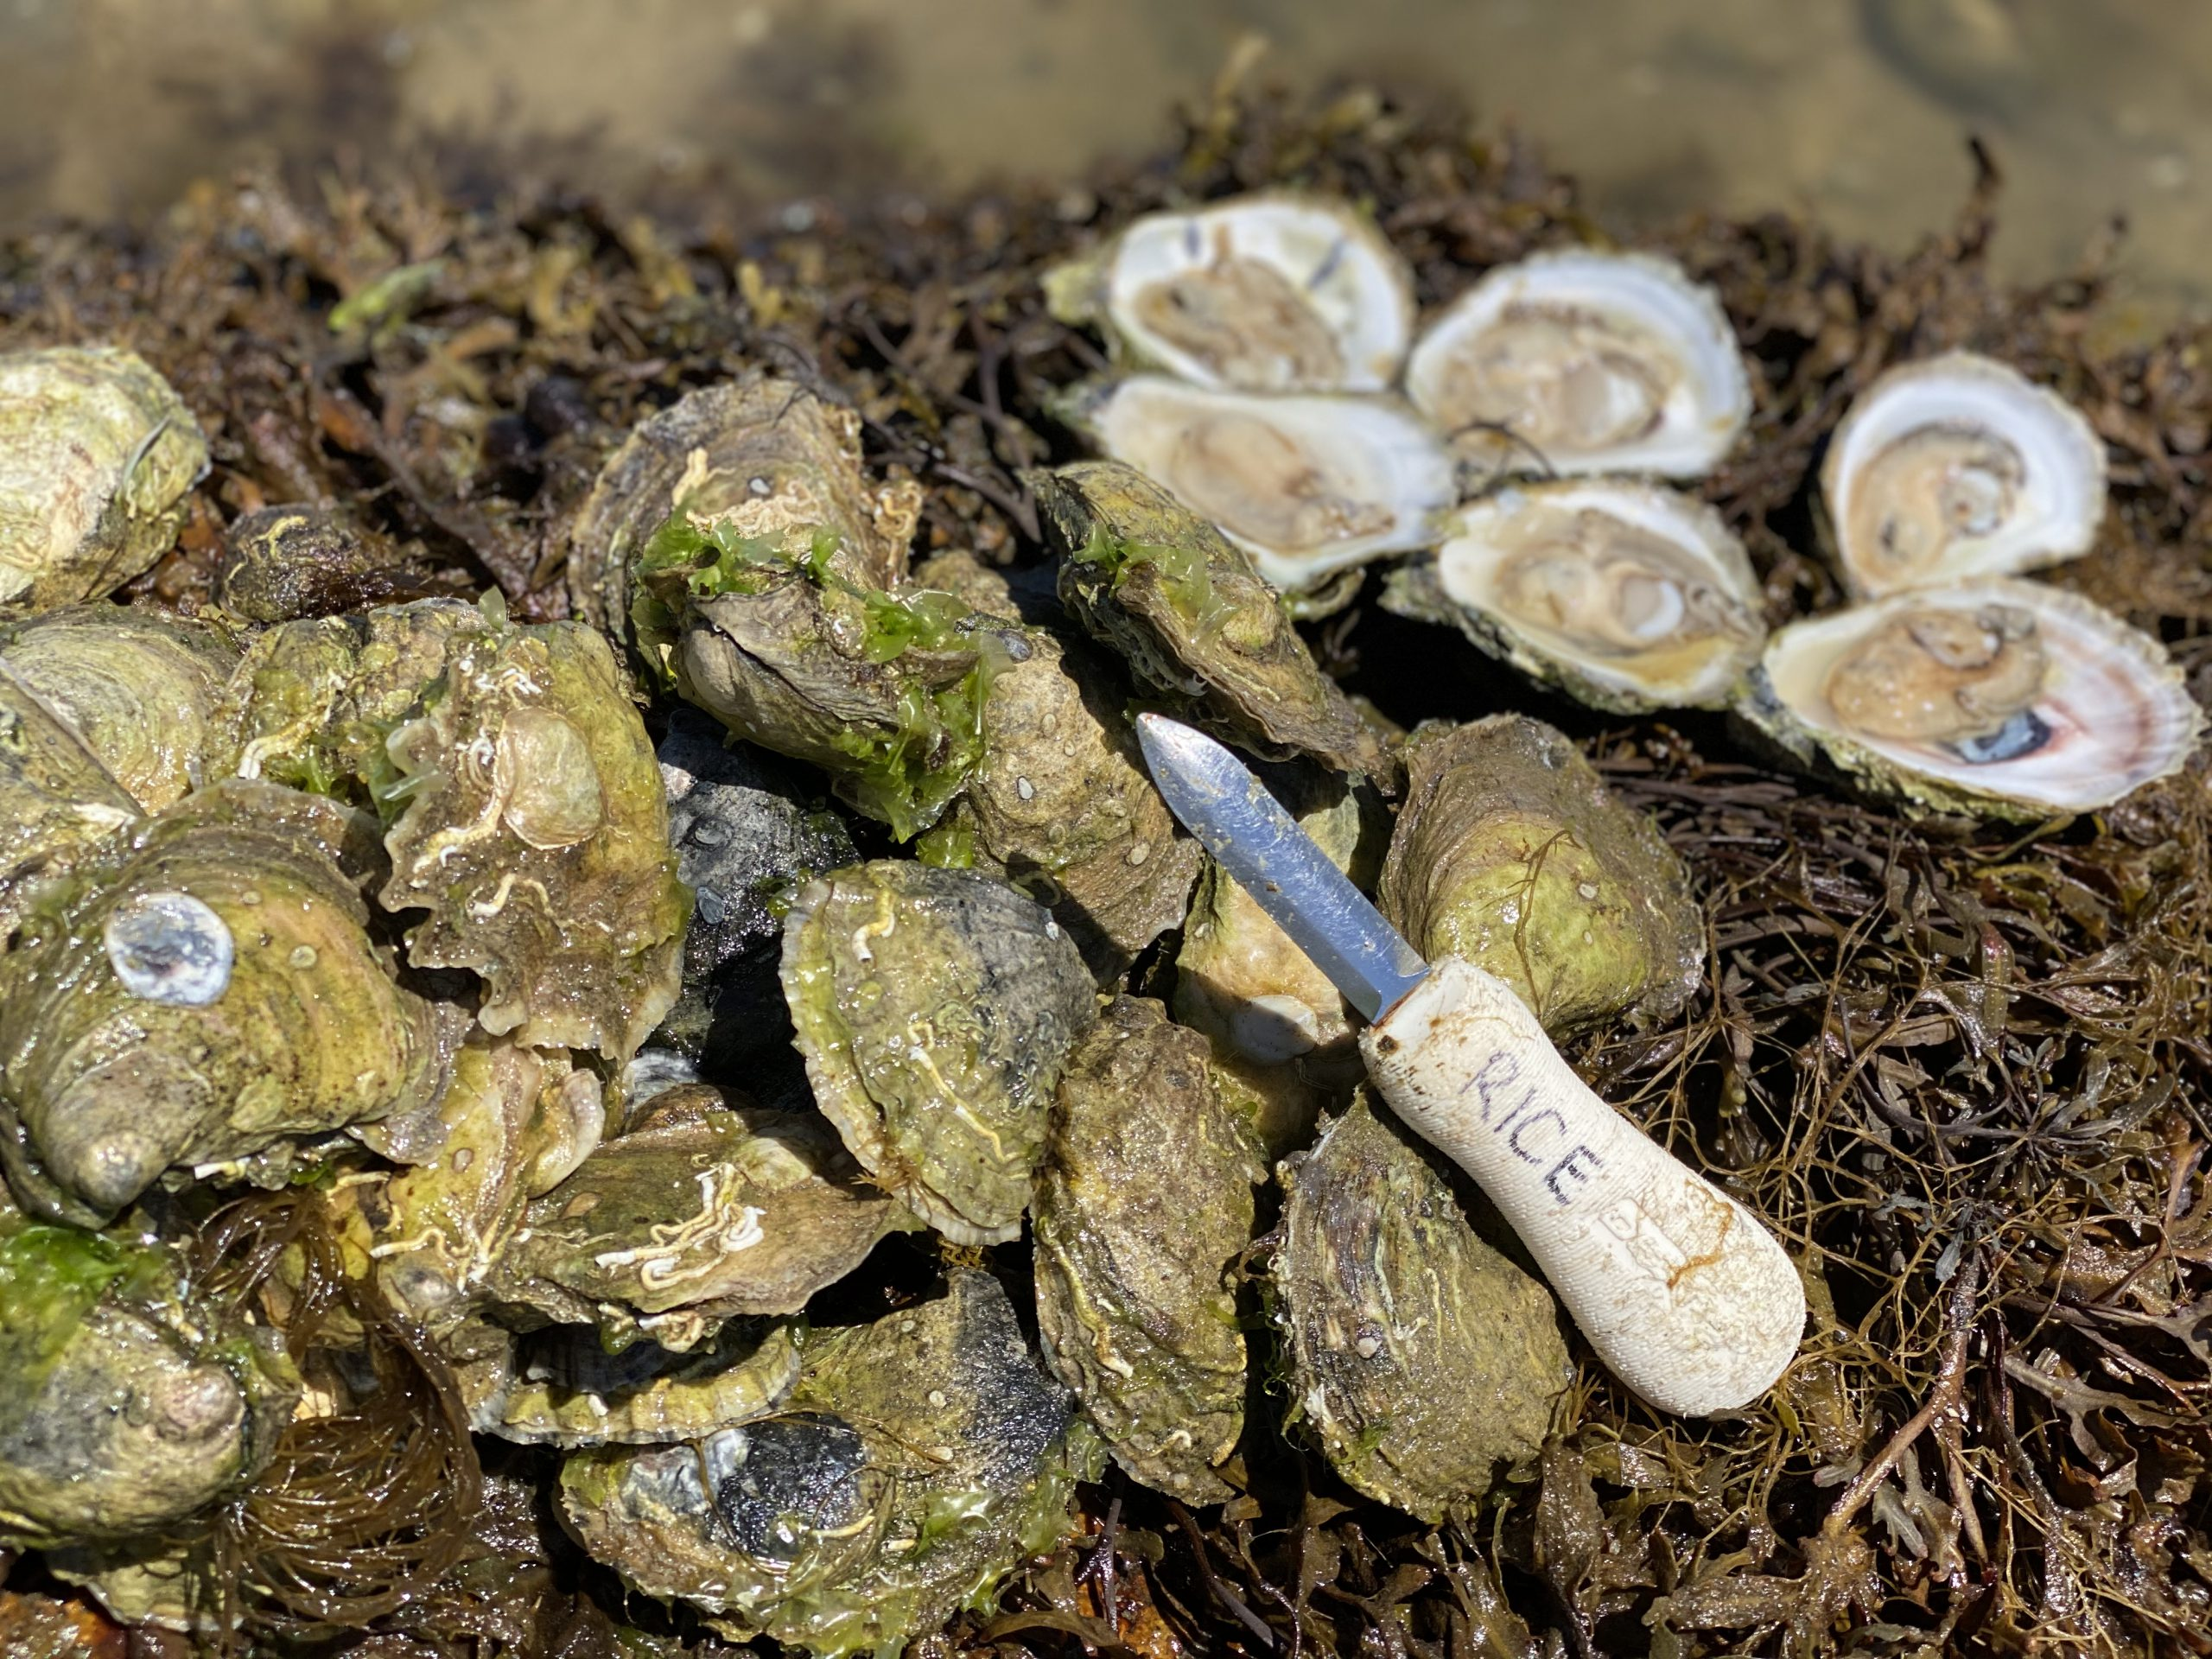 How To Shuck An Oyster: Step by Step